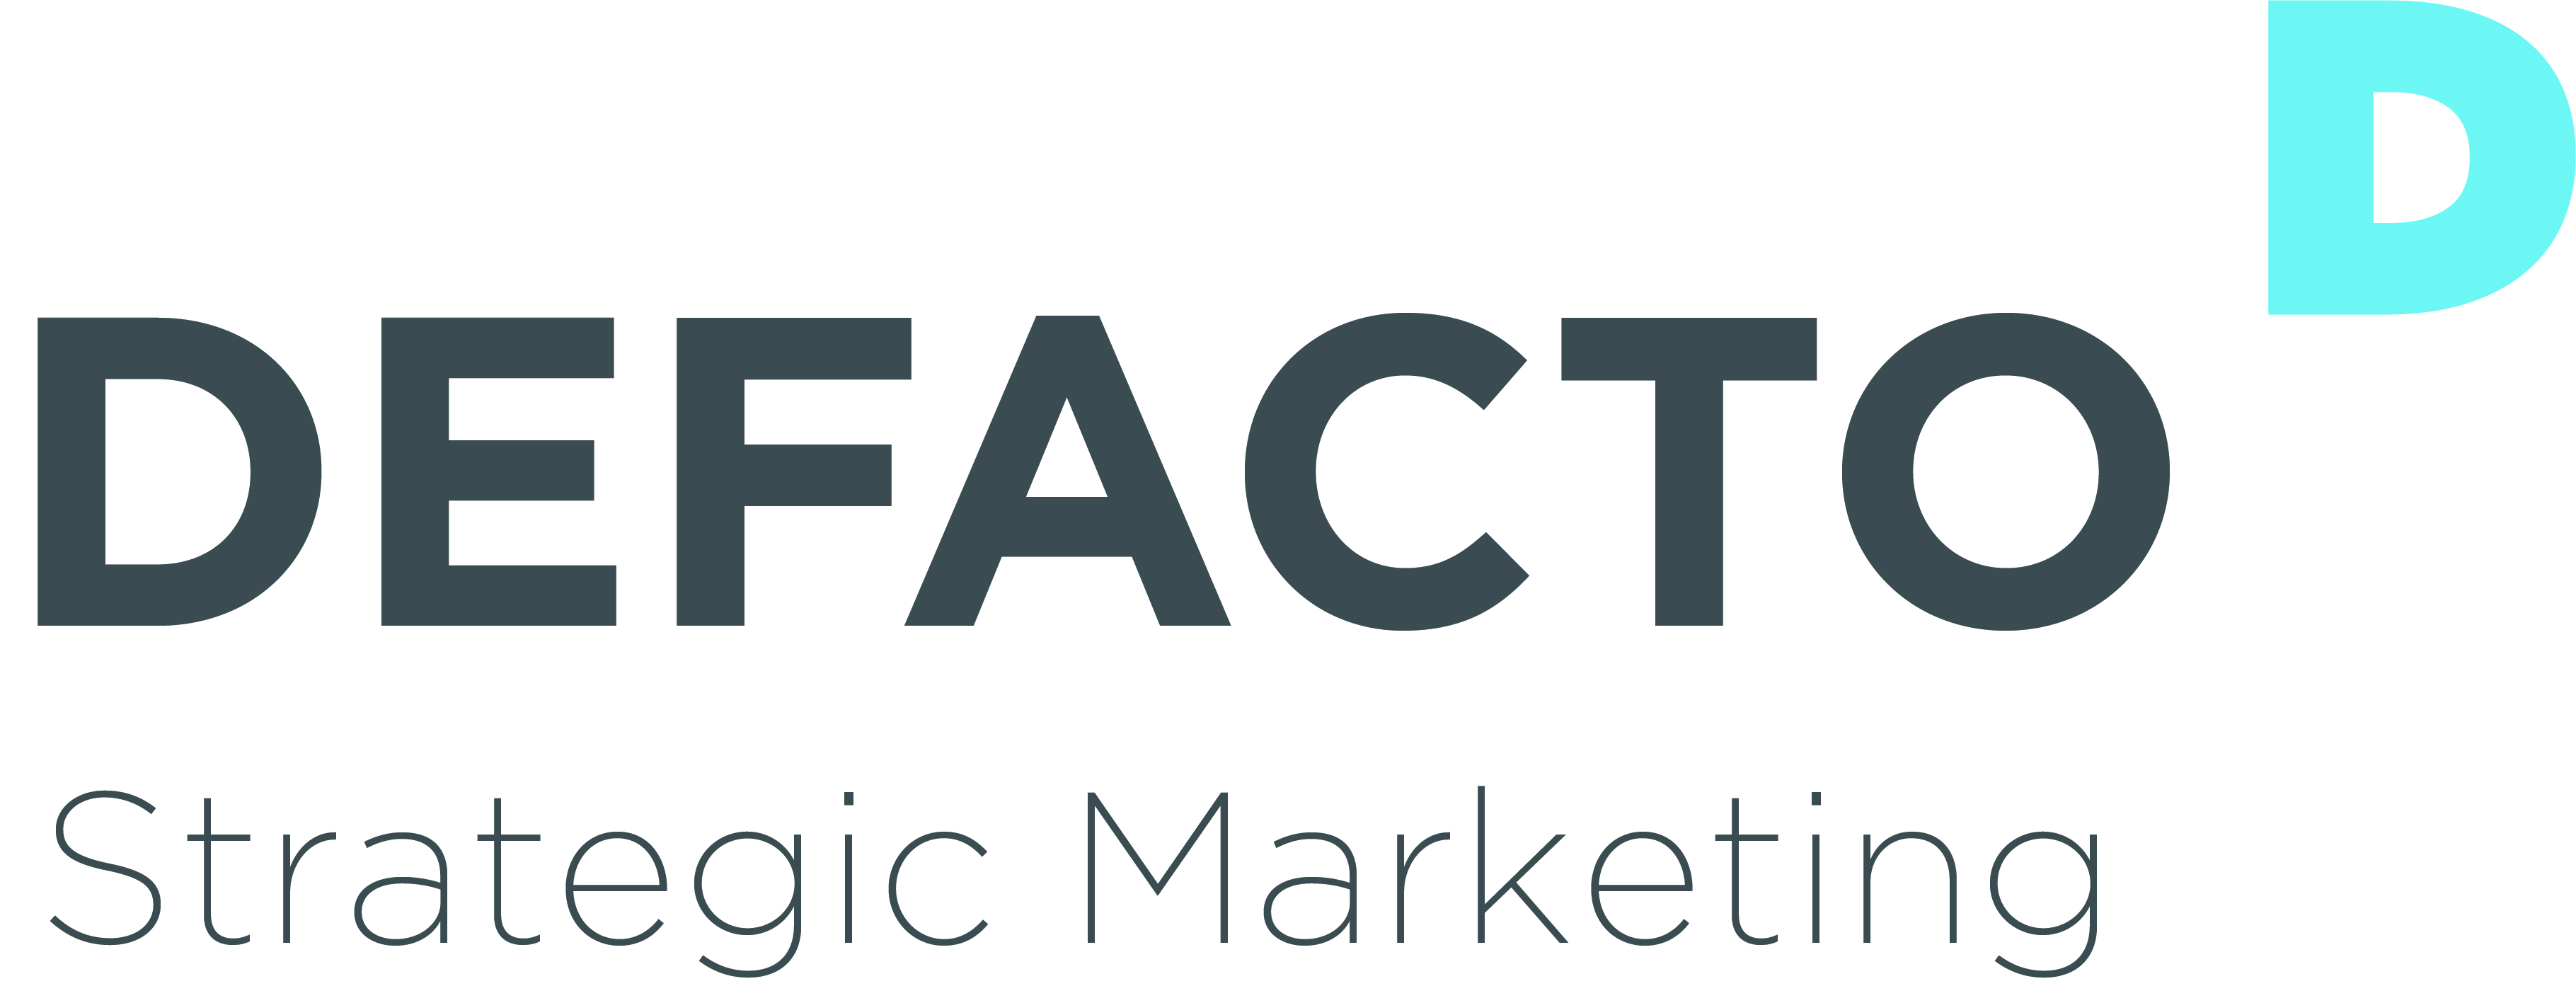 DEFACTO | Strategic Marketing